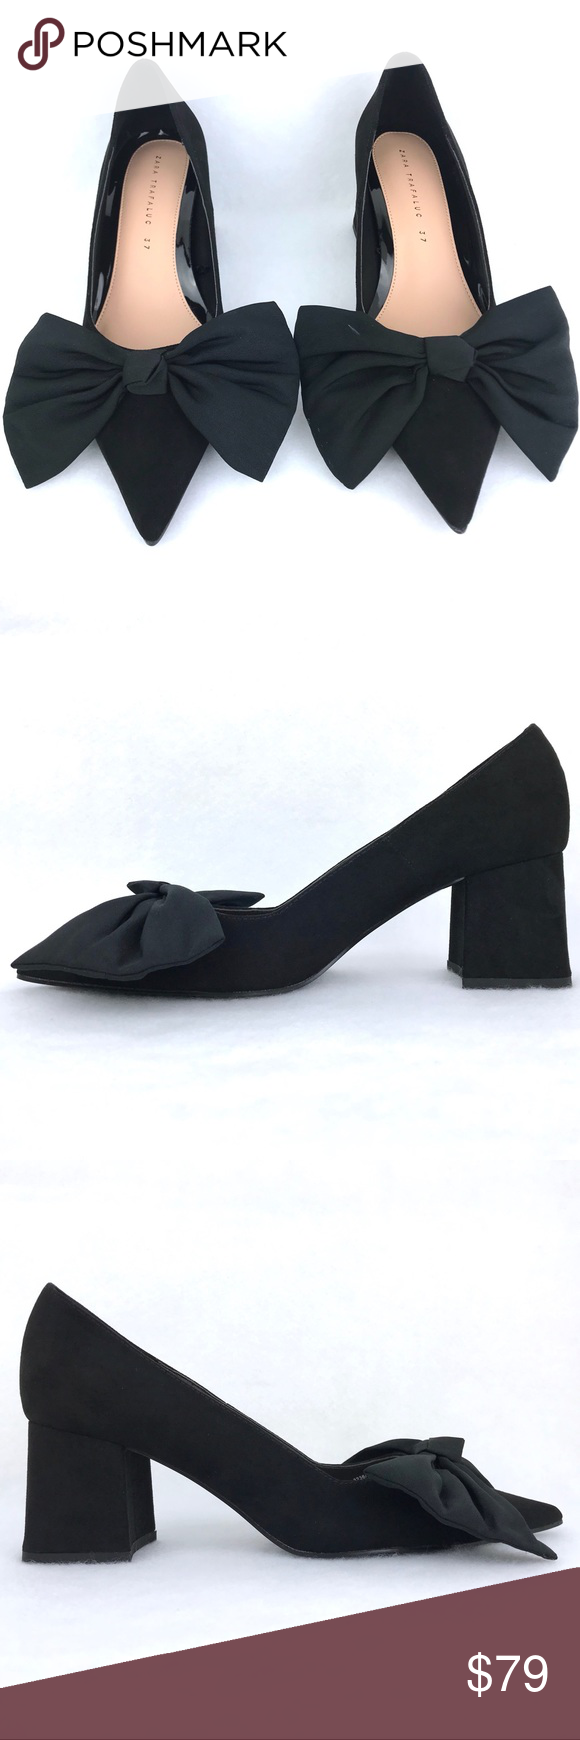 Bow Court Shoes Faux Suede Pointed Toe